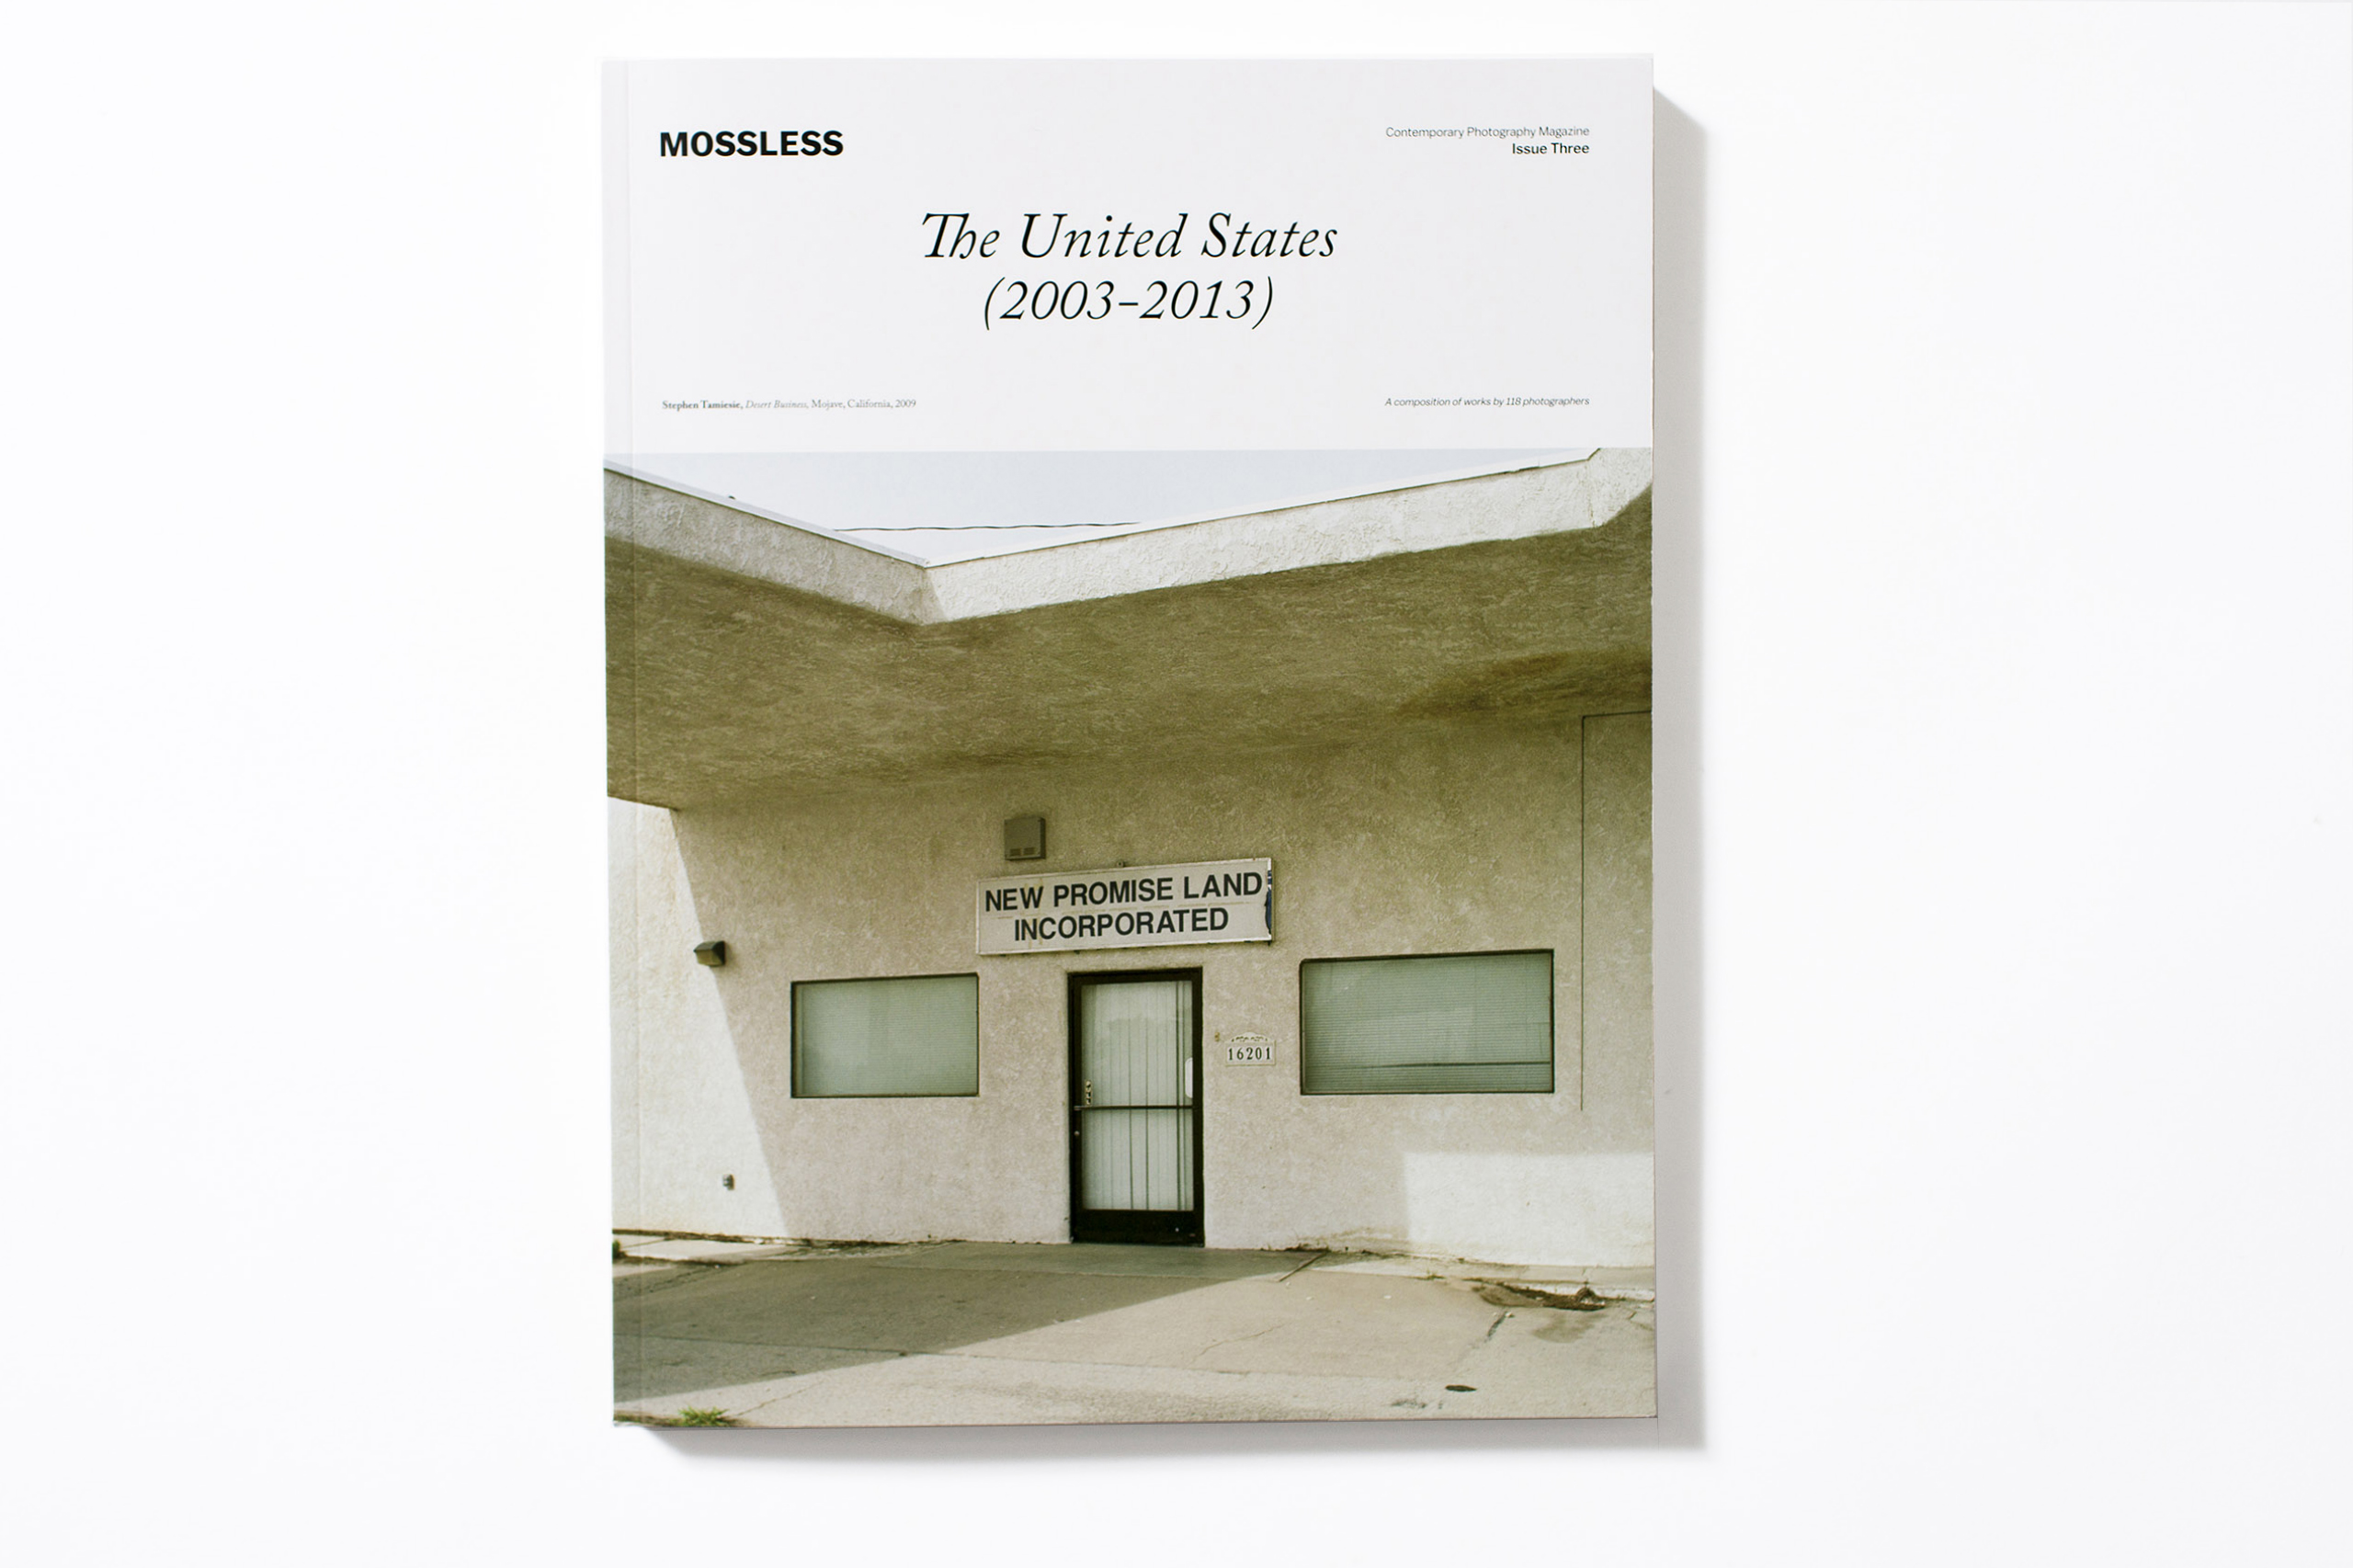 The United States 2003-2013 Mossless Magazine, selected by Matthew Leifheit, Photo Editor at VICE